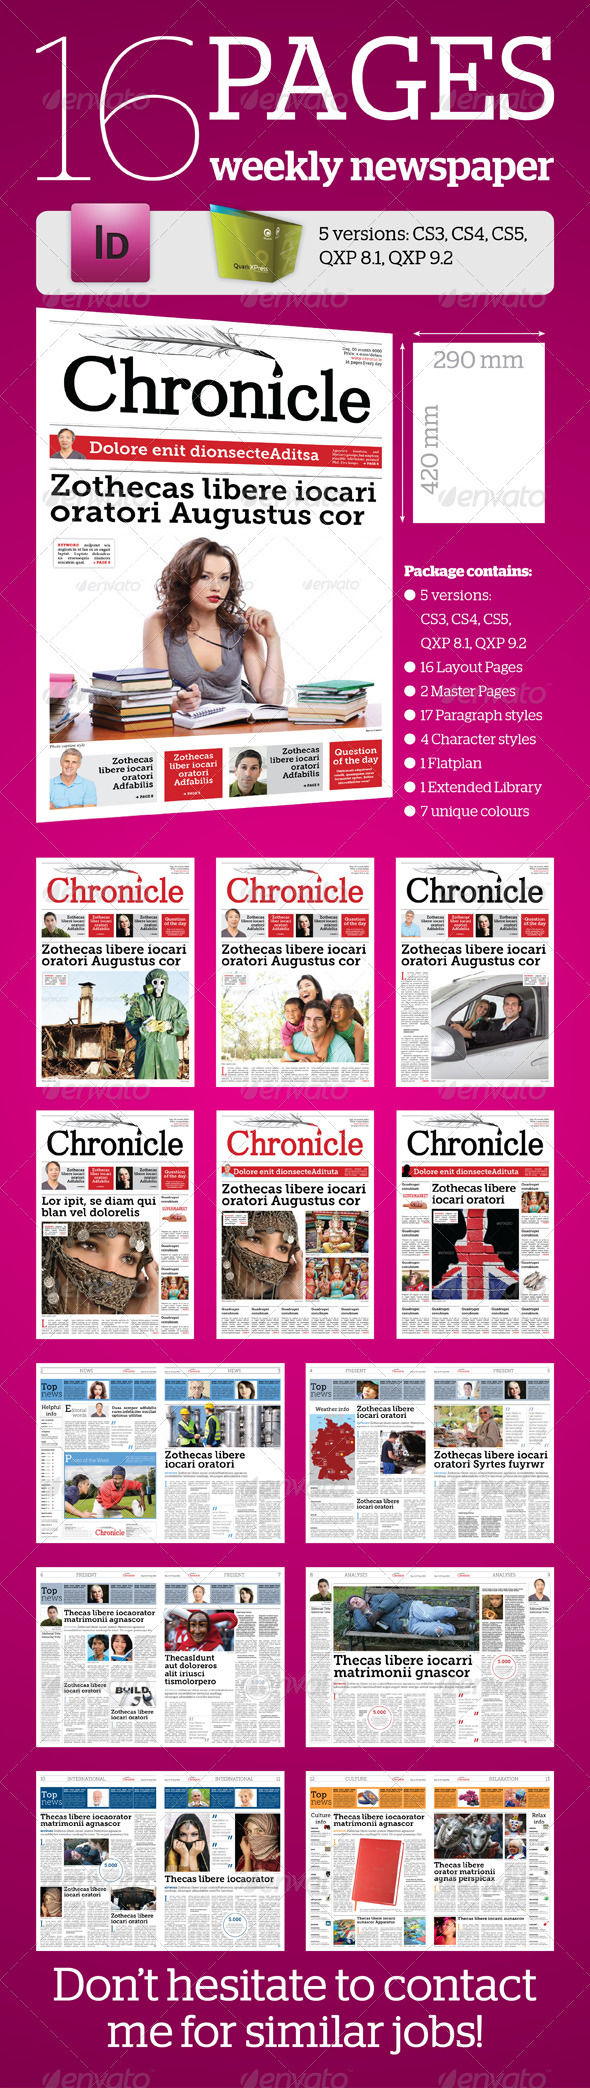 GraphicRiver 16 Pages Weekly Newspaper 1806203